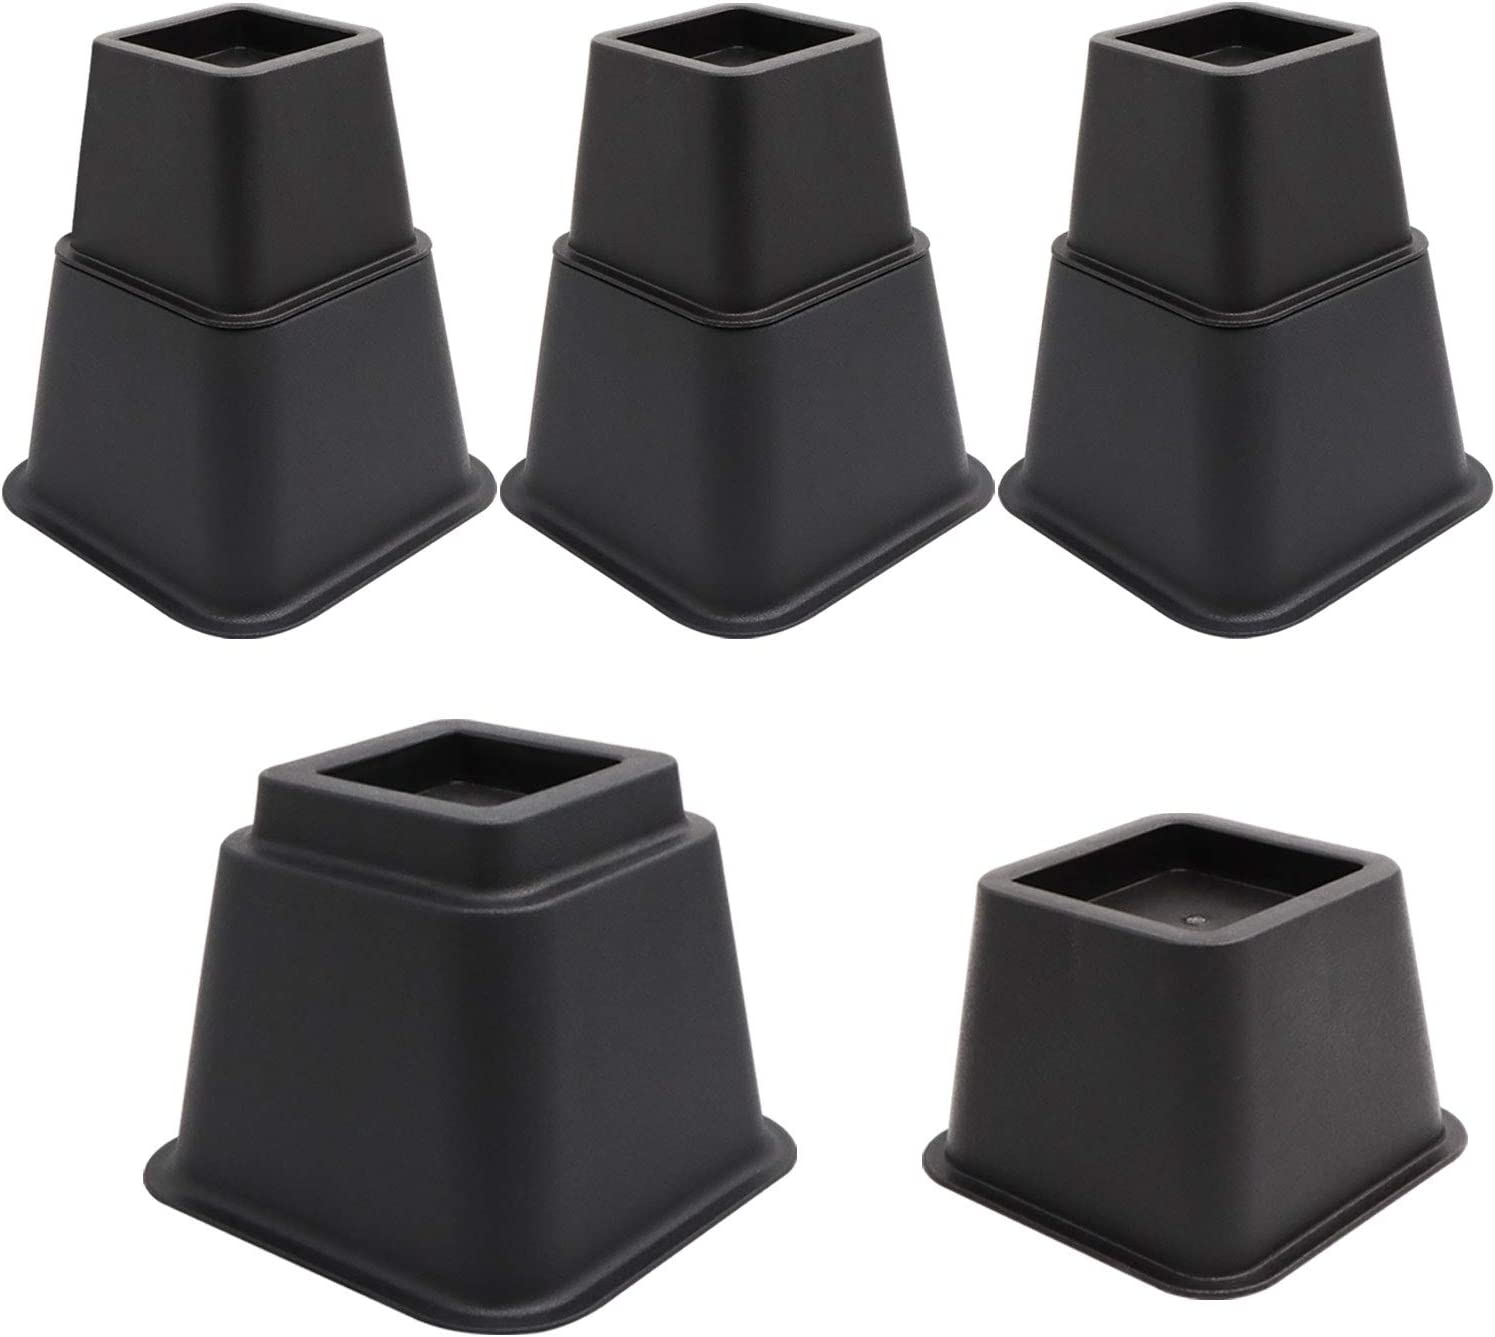 TUOKEOGO Bed Risers, Desk Risers Adjustable, Stackable Furniture Risers 3, 5, 8Inch Heavy Duty